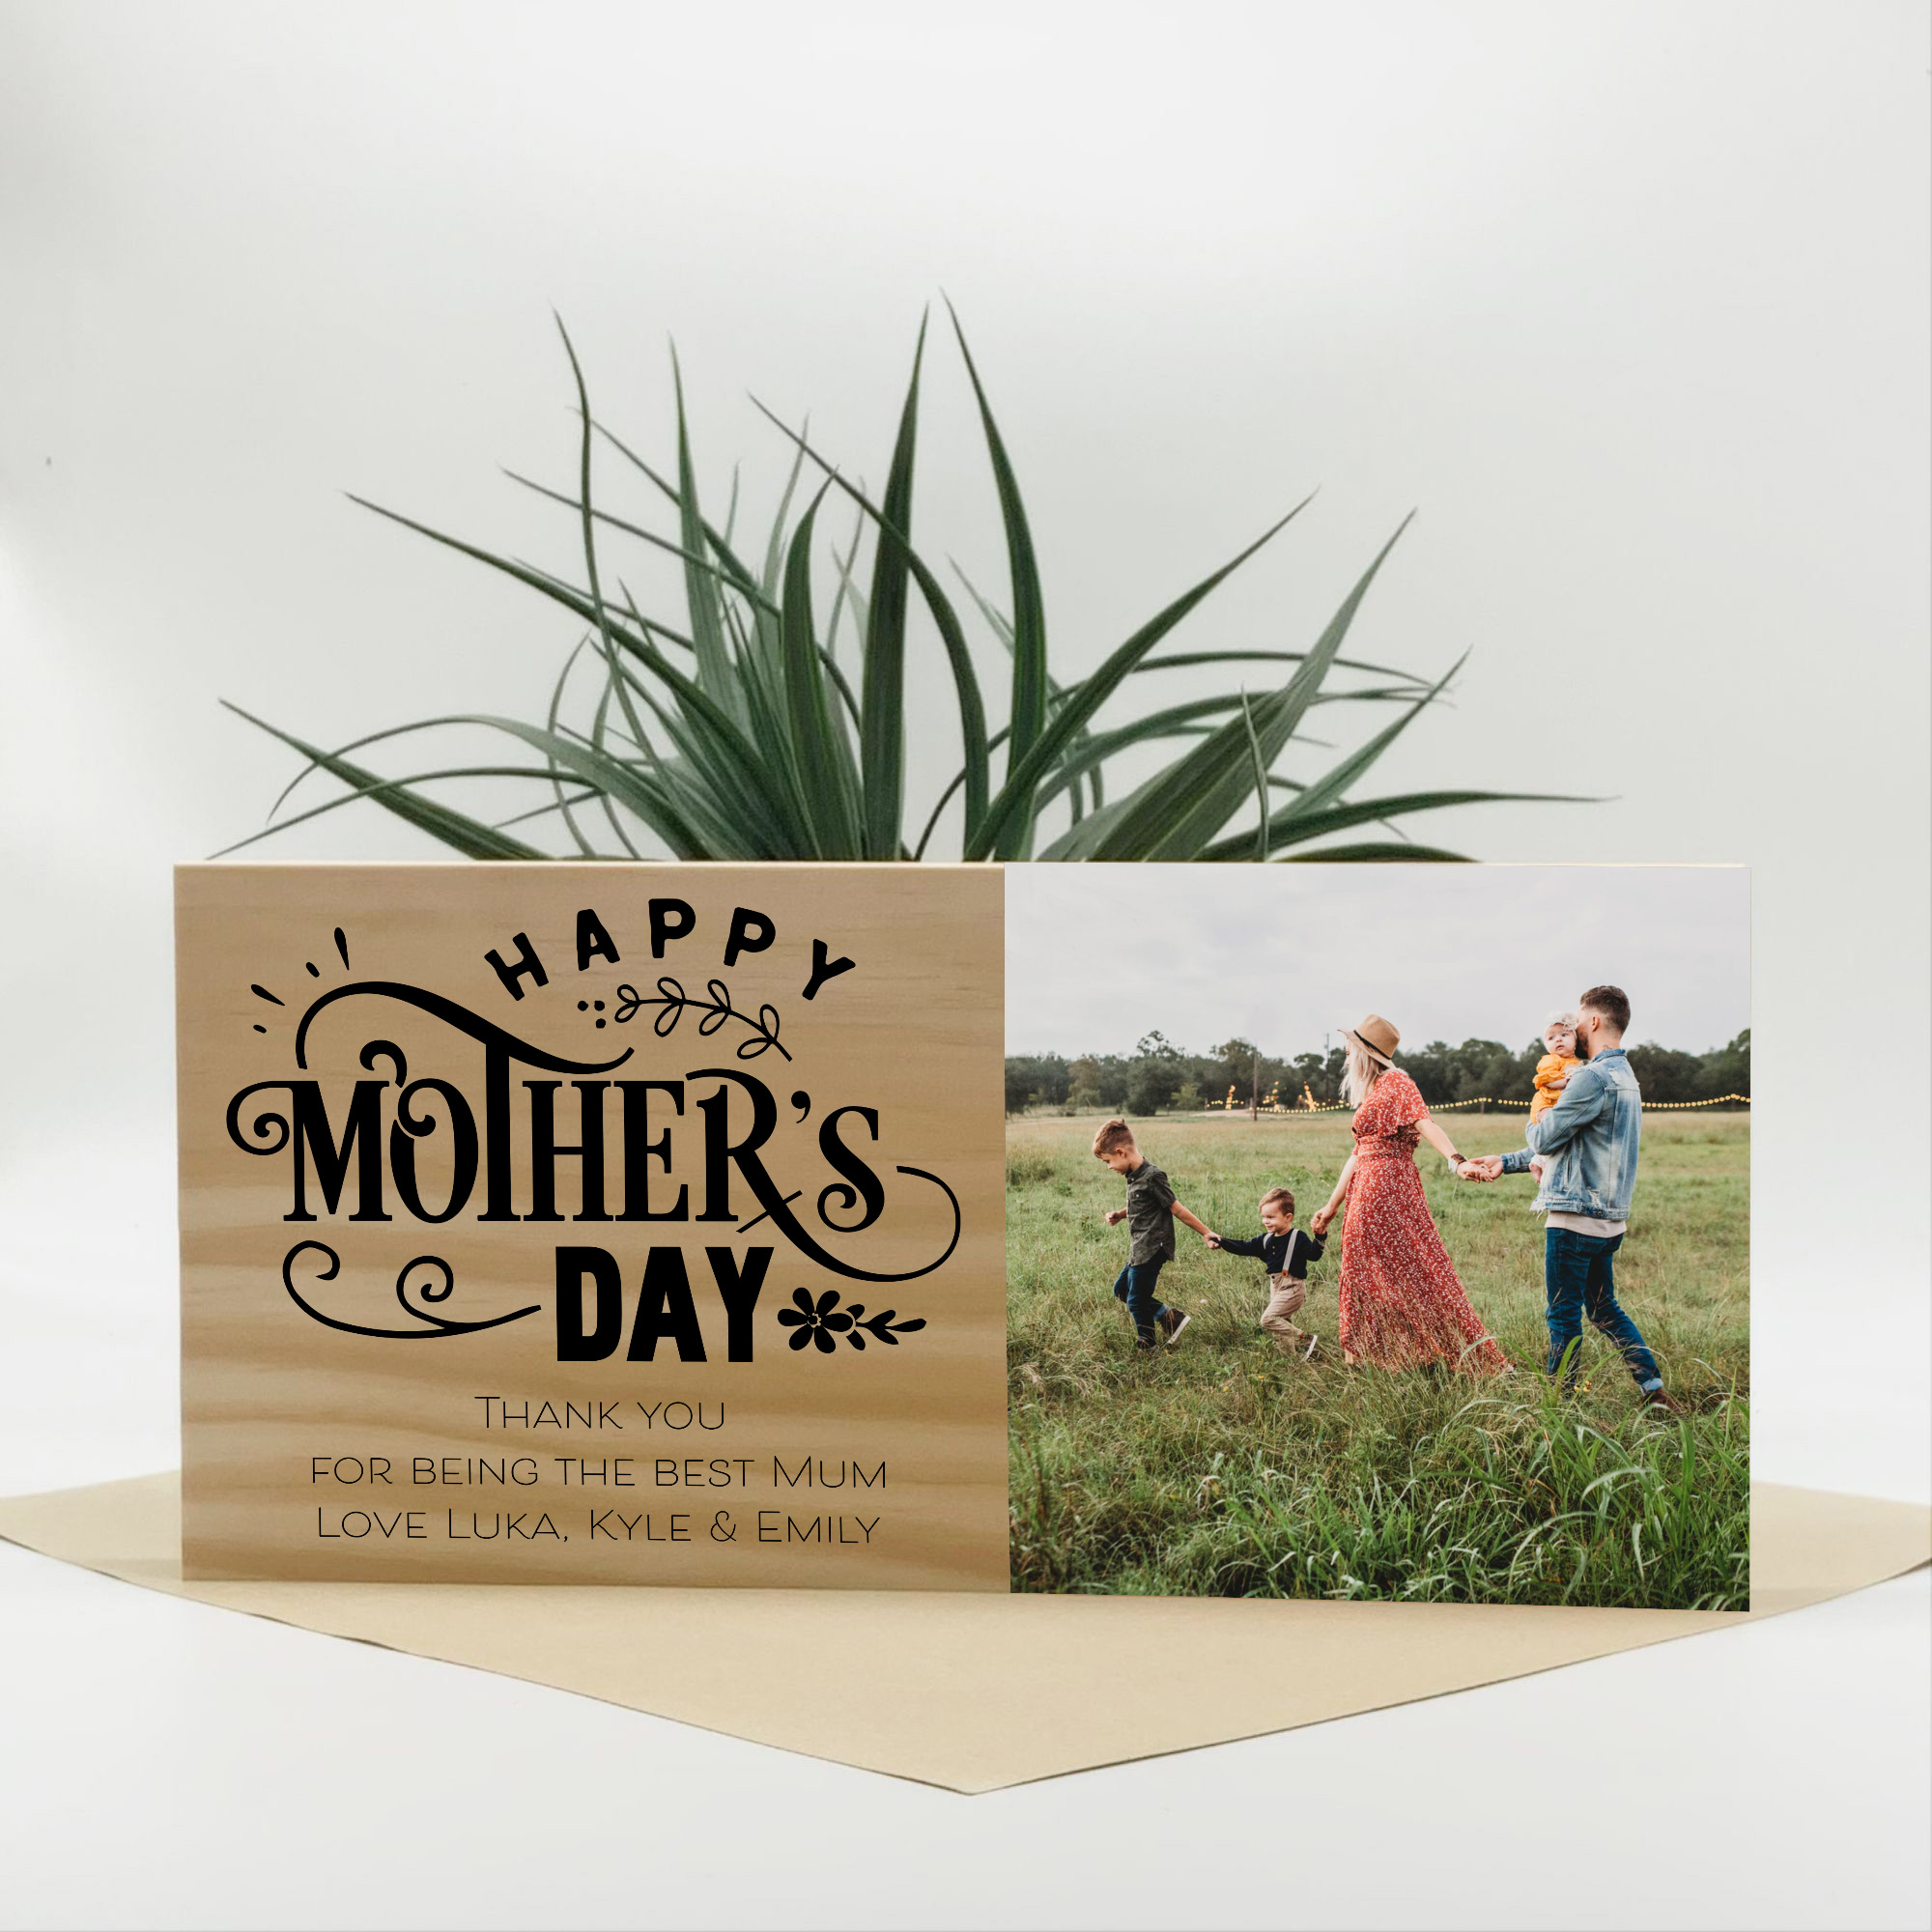 custom mothers day gift, photo block for mum